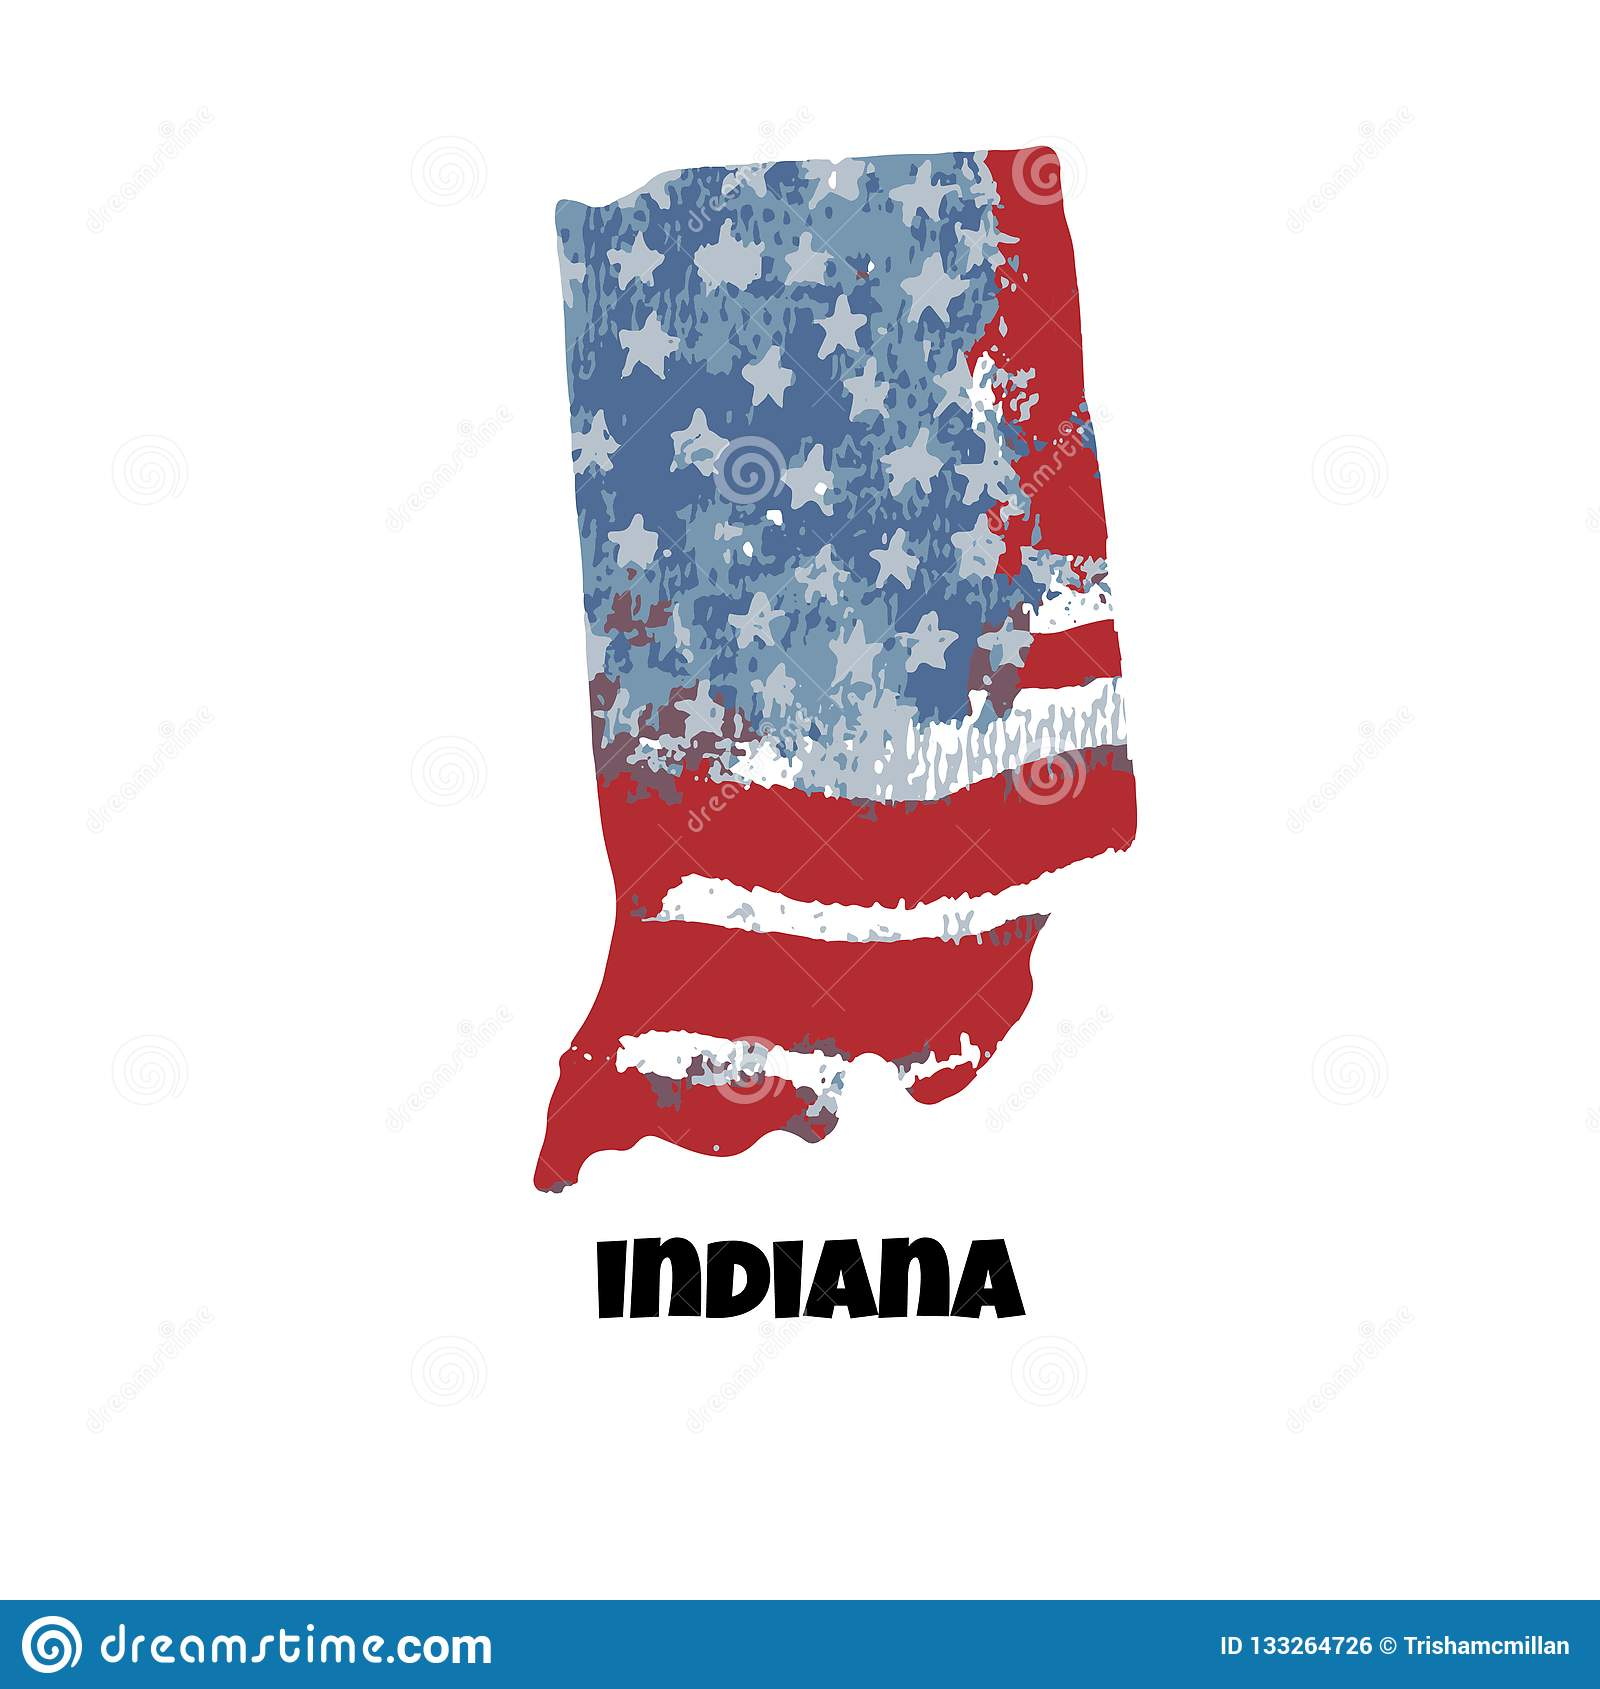 Artistic Of - Indiana United 133264726 Illustration Vector America Honor States Stock State